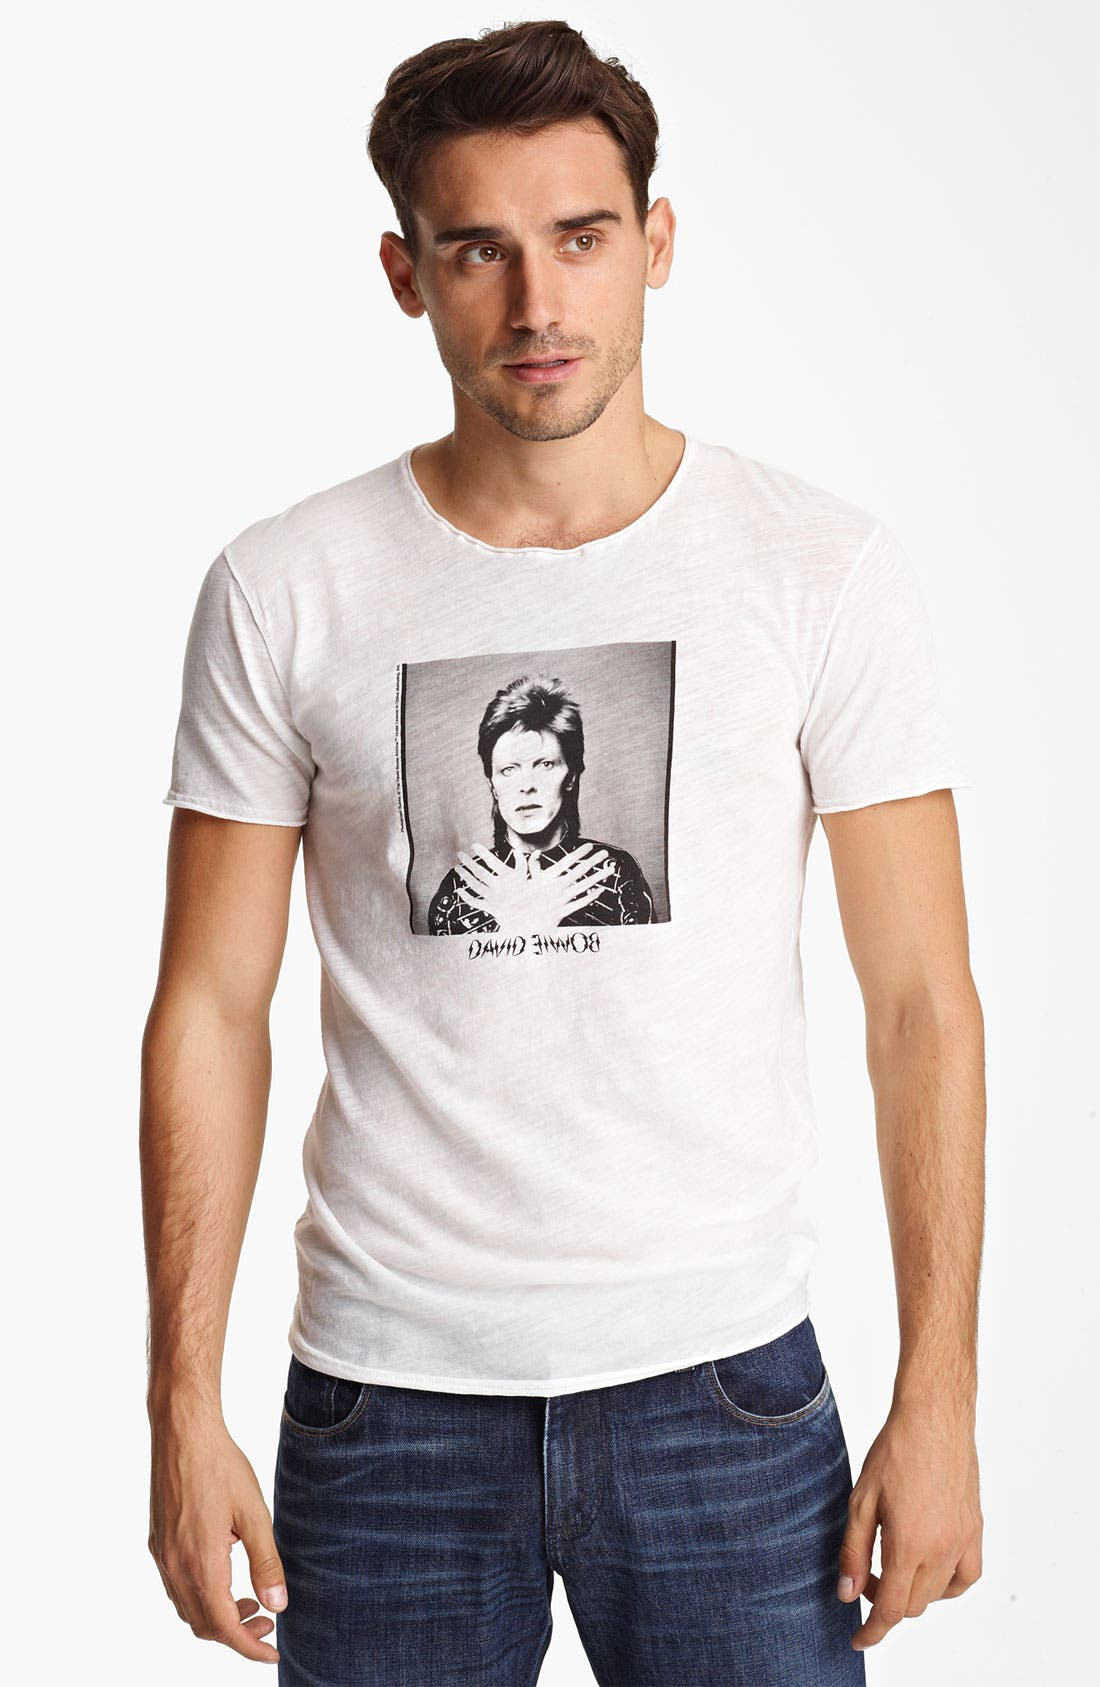 Alternate Image 1 Selected - Dolce&Gabbana 'David Bowie' Print T-Shirt